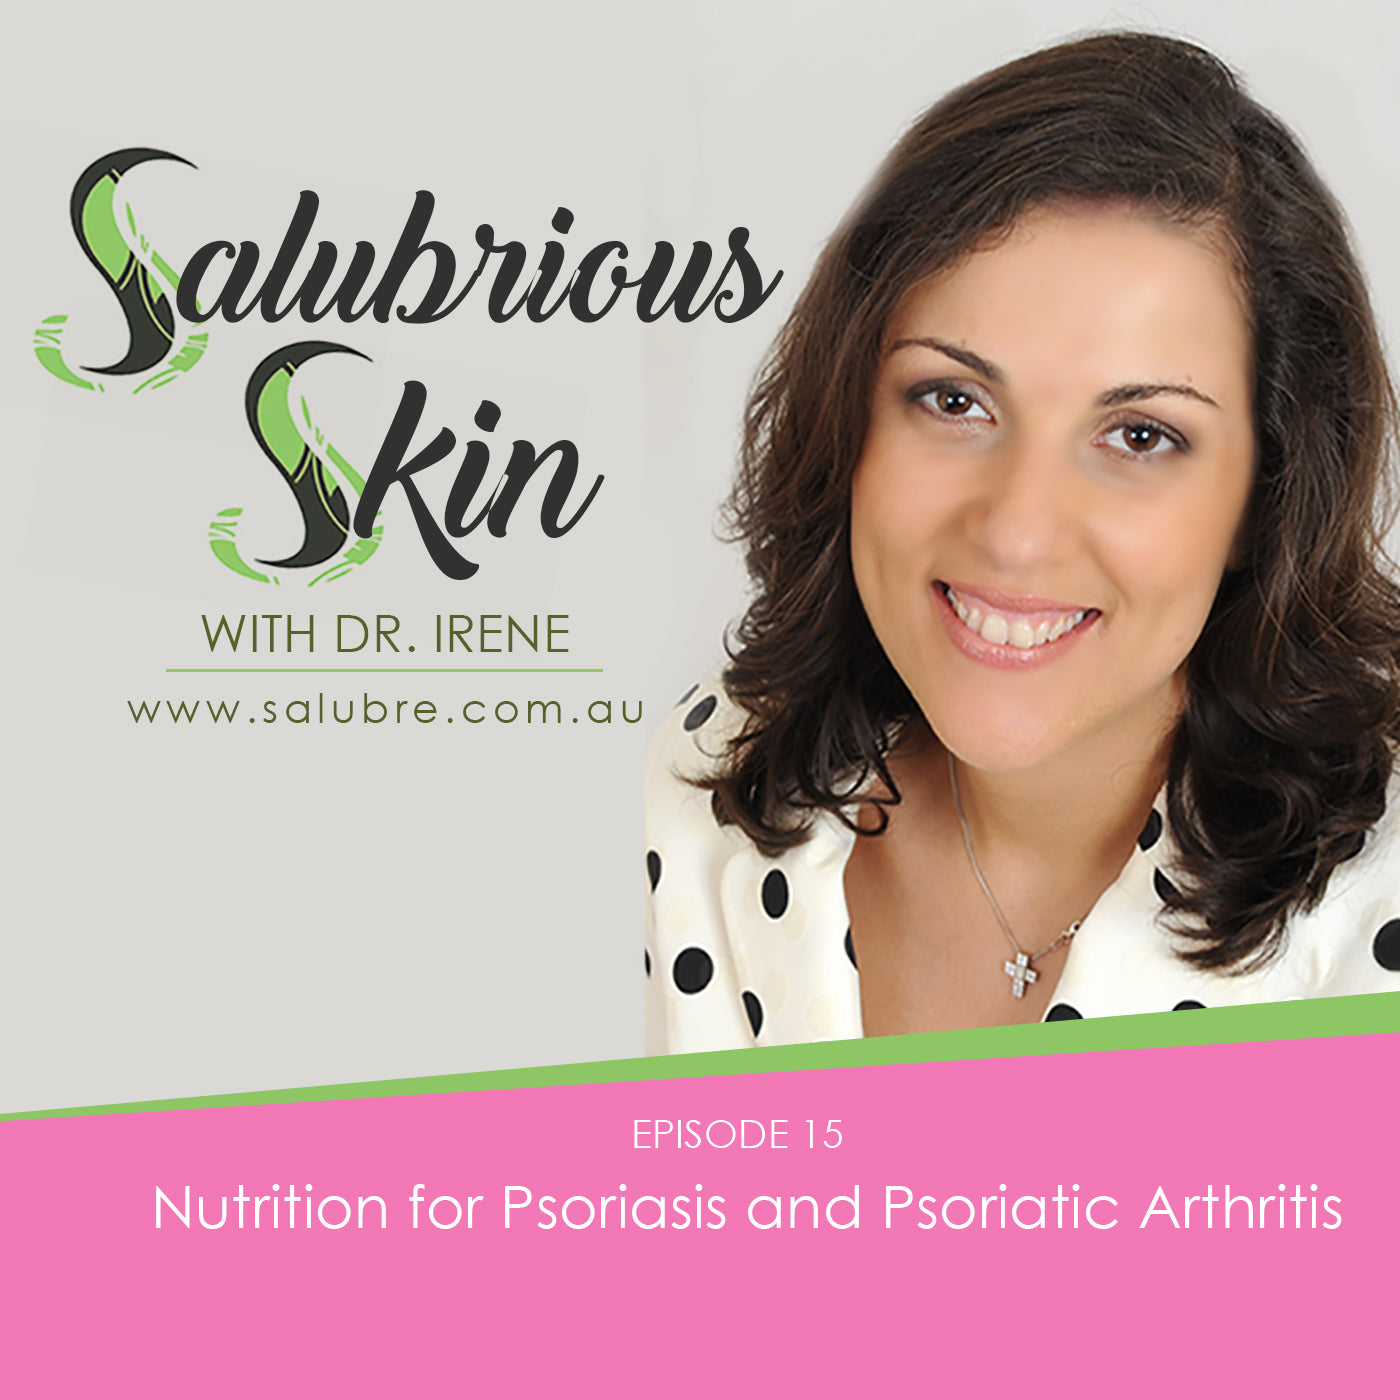 Episode 15: Nutrition for Psoriasis and Psoriatic Arthritis